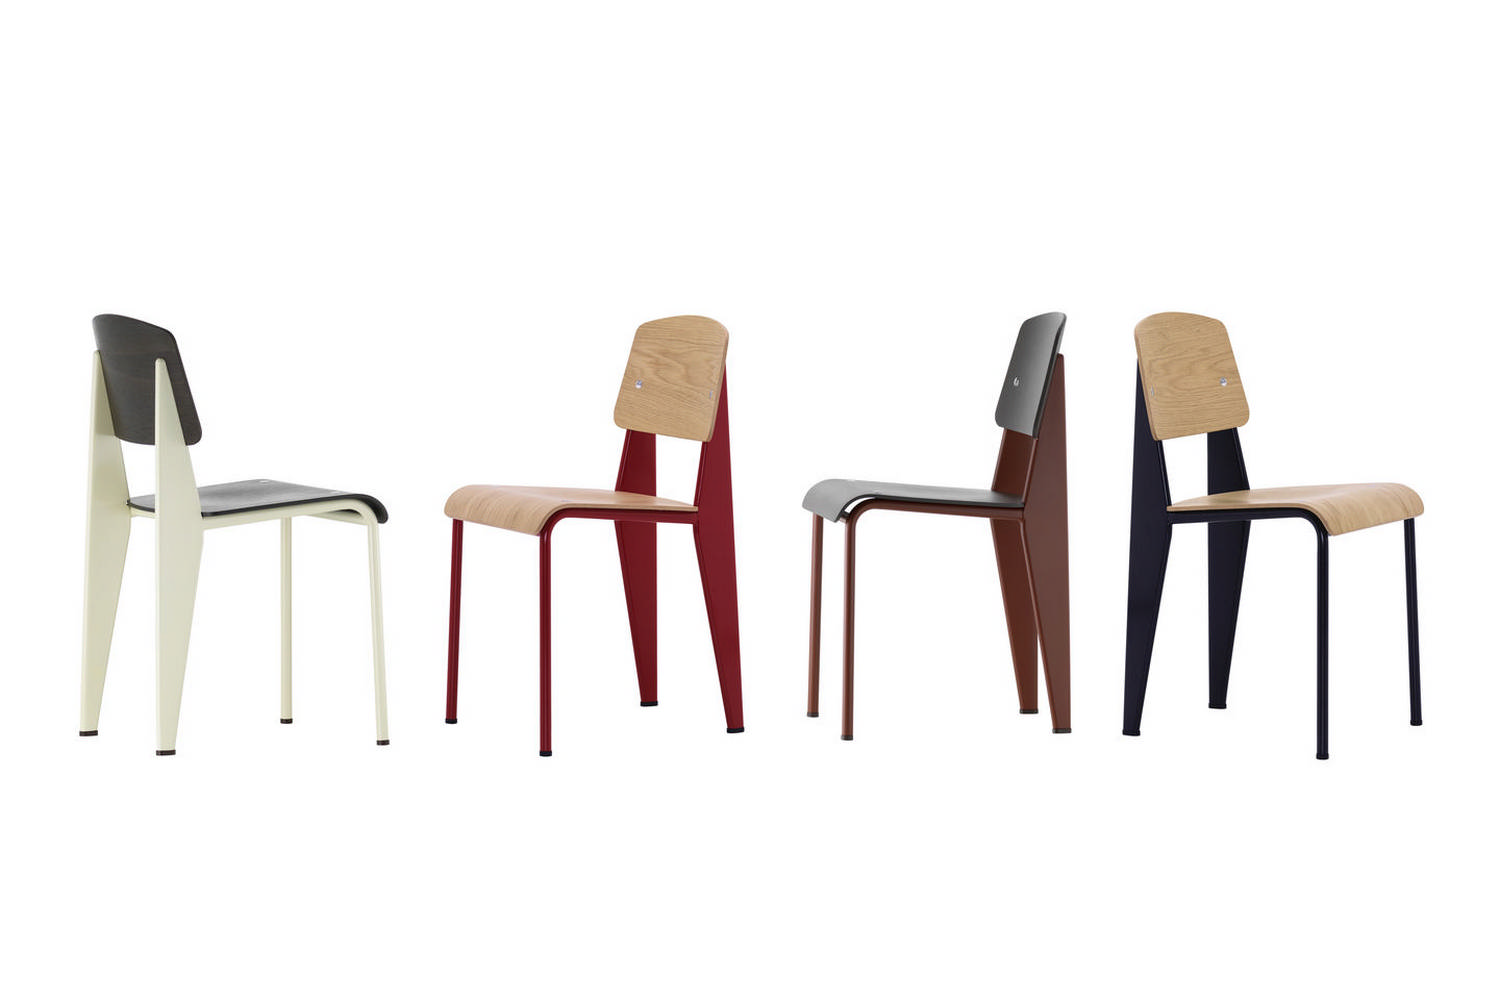 chair standards sayl task standard by jean prouve for vitra space furniture